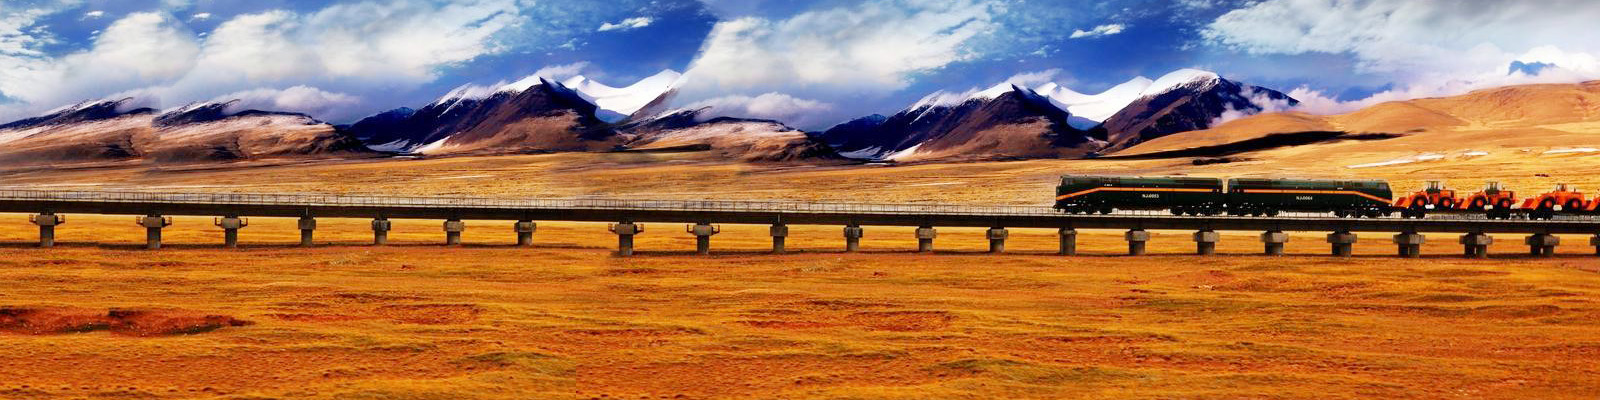 11 Days Overland Tour from Xining to Lhasa